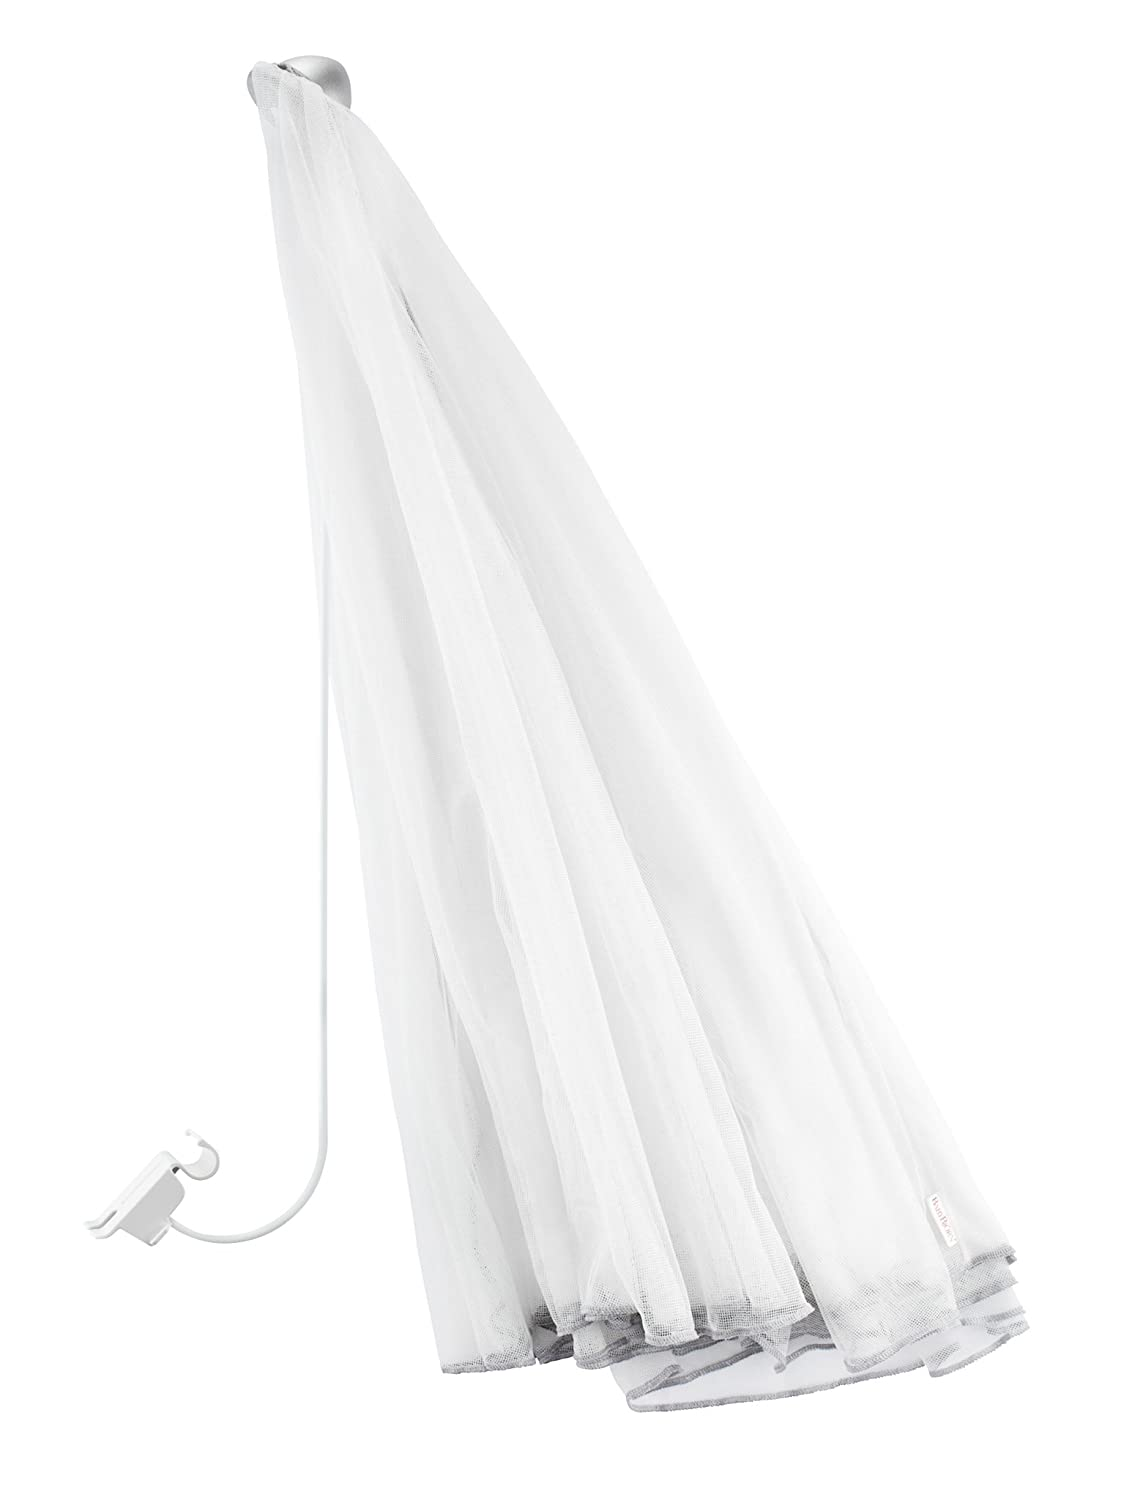 BABYBJORN Canopy for Cradle - White BabyBjörn 042021US